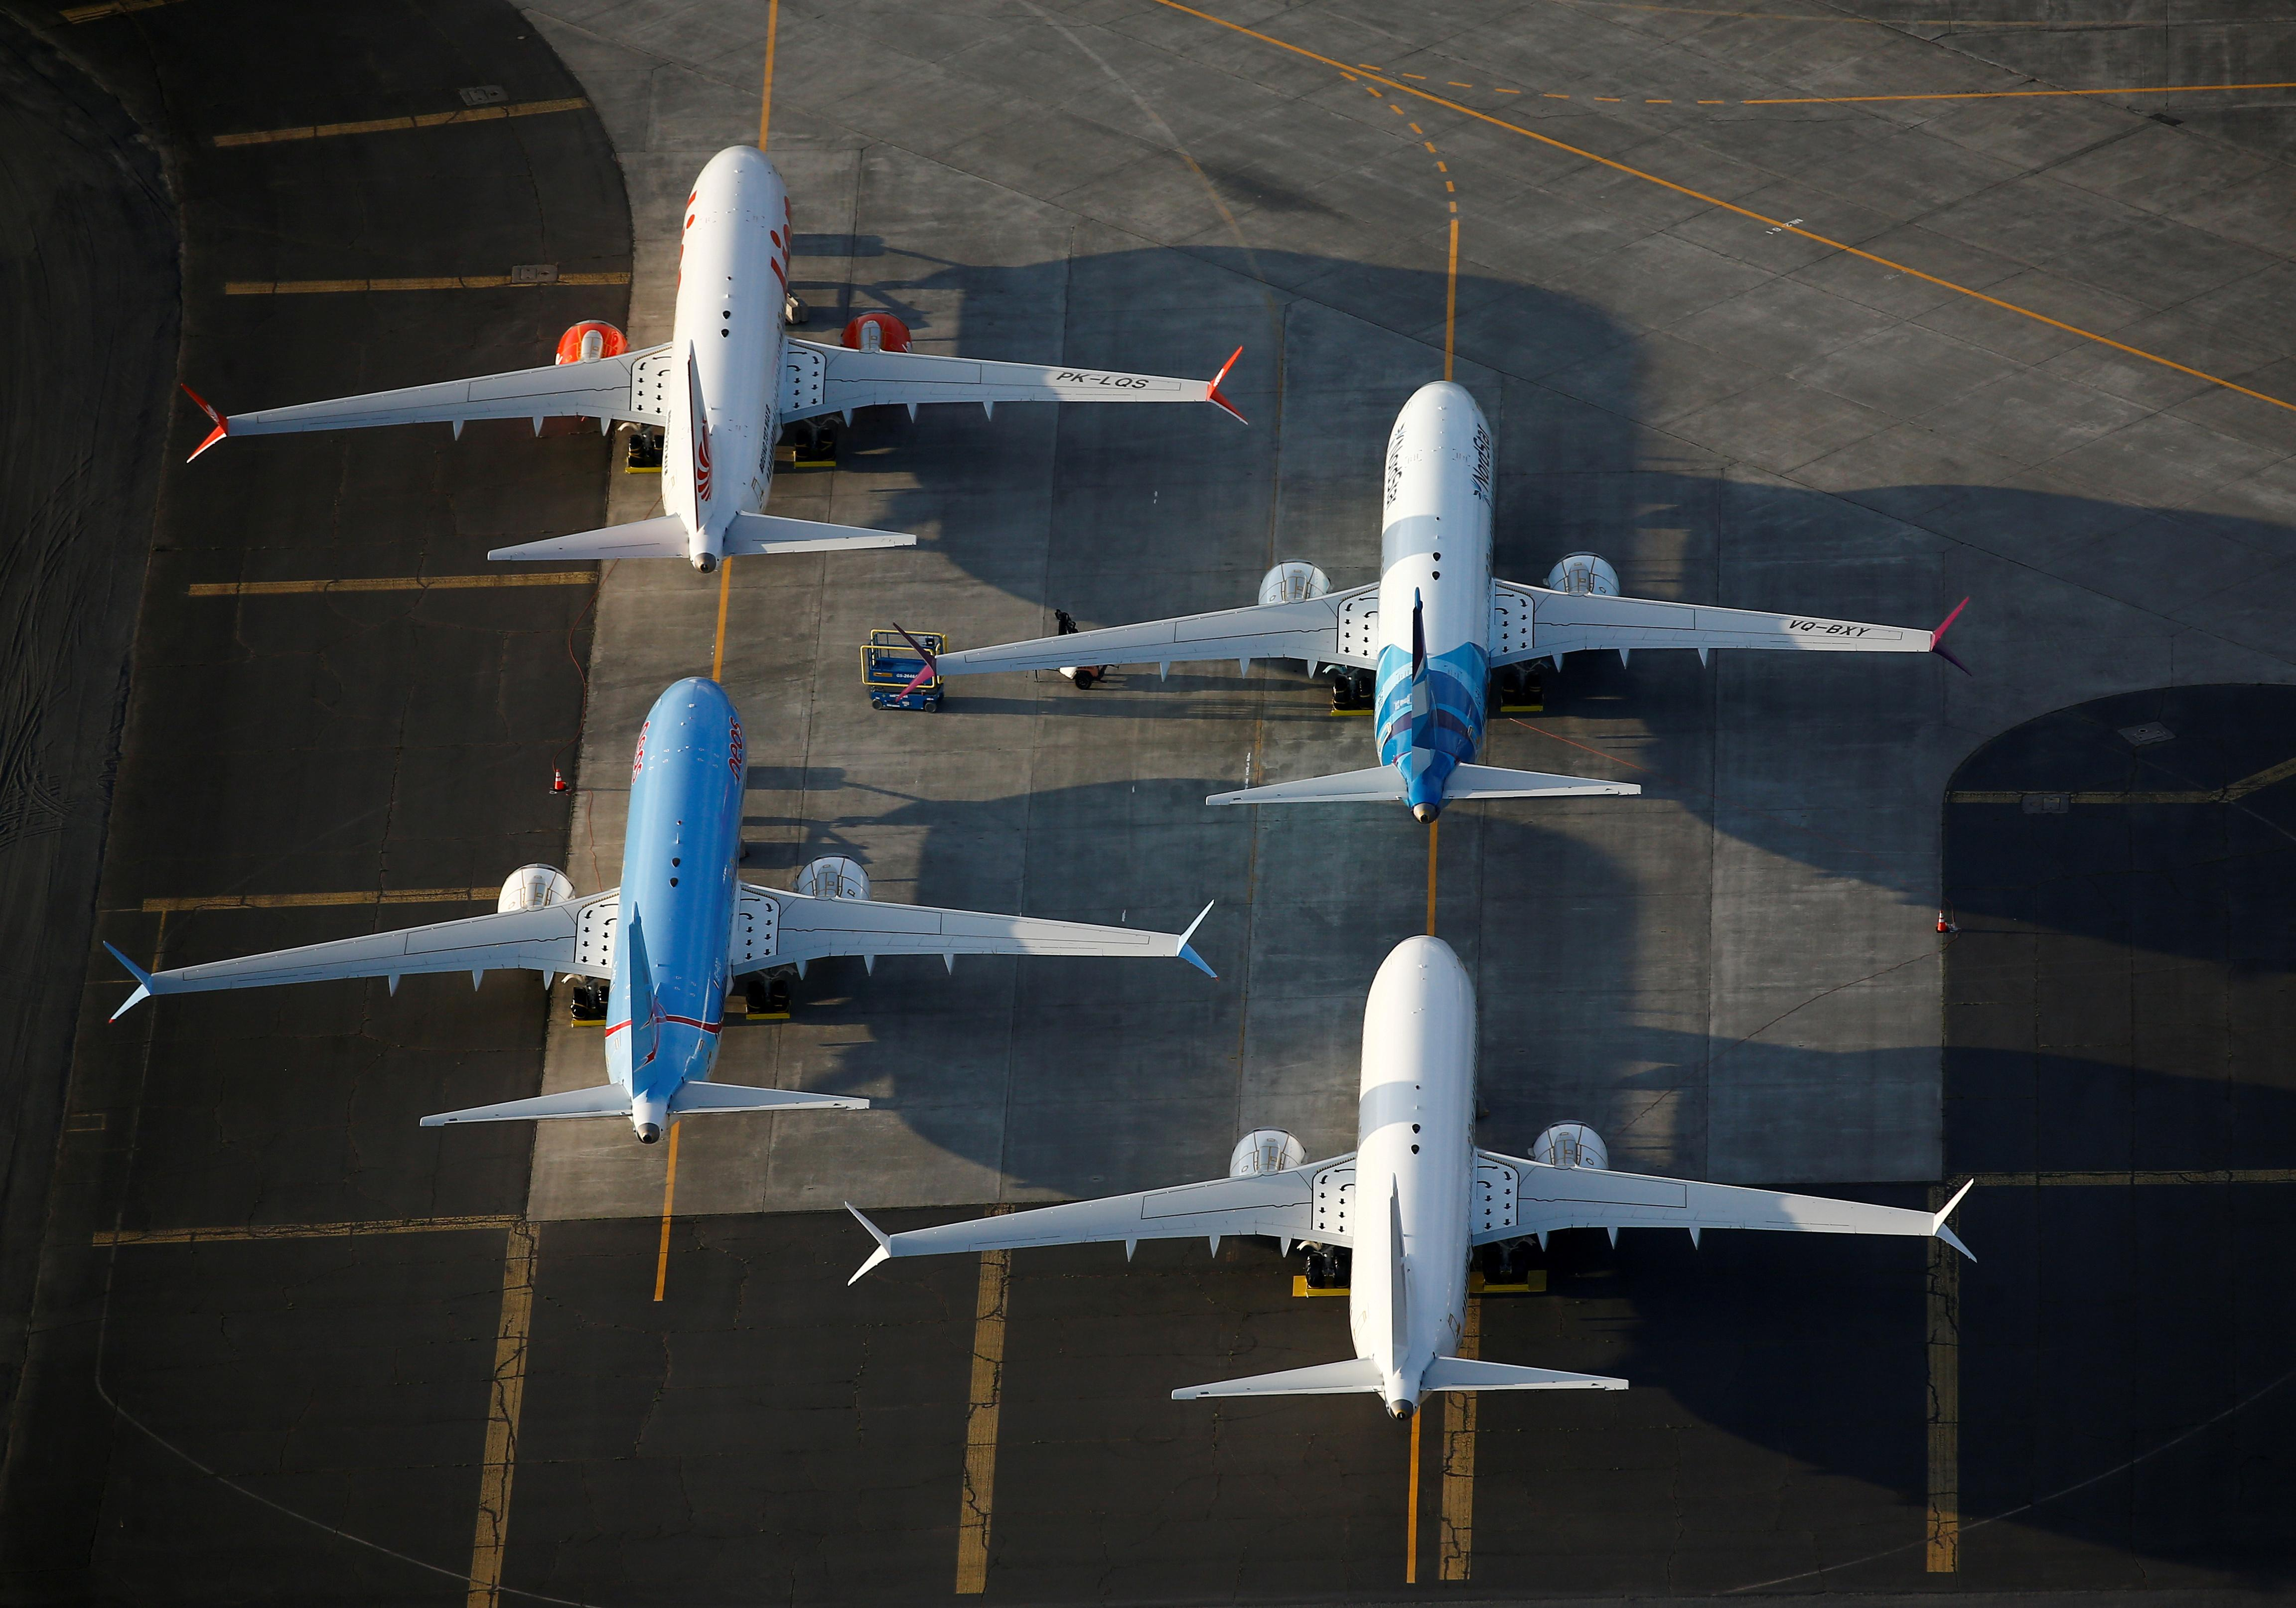 Exclusive: Boeing 2016 internal messages suggest employees may have...